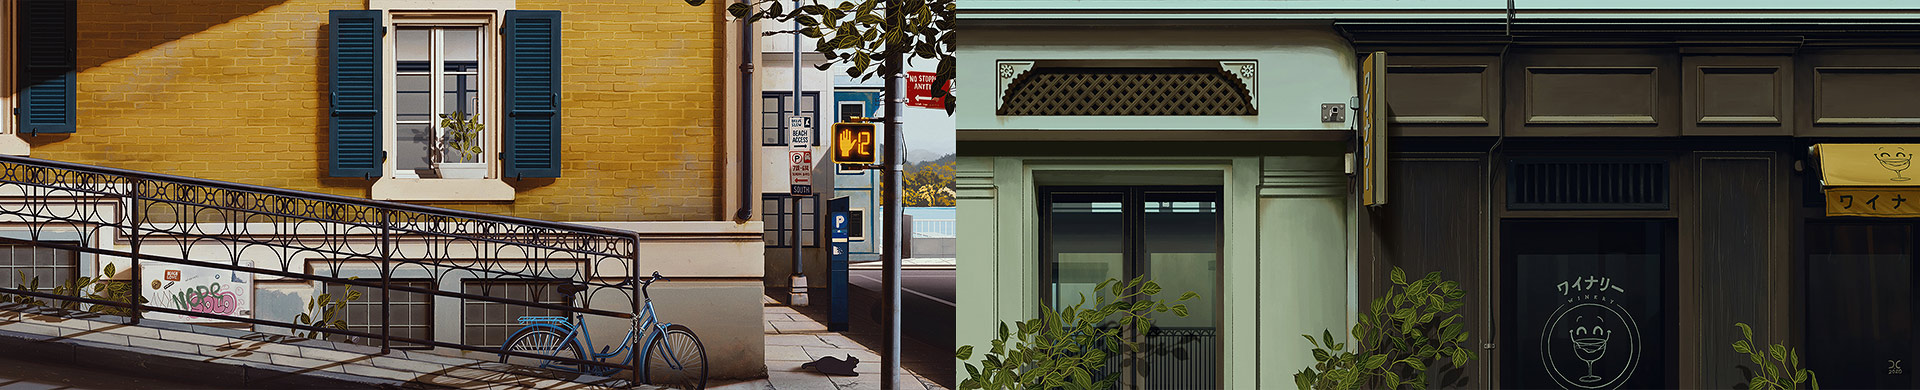 Animated Environment Paintings